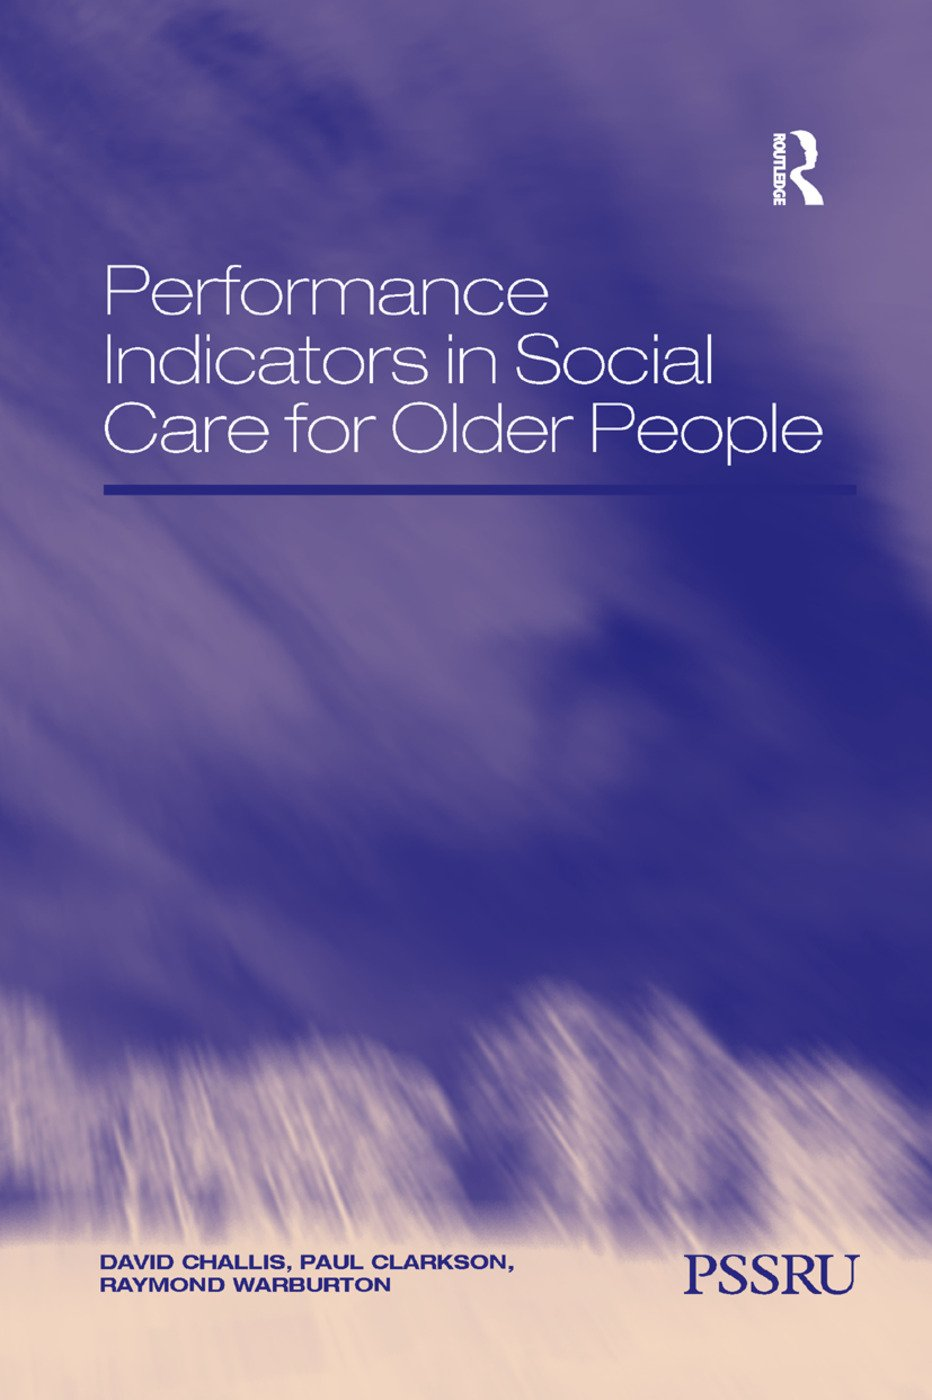 Performance Indicators in Social Care for Older People book cover